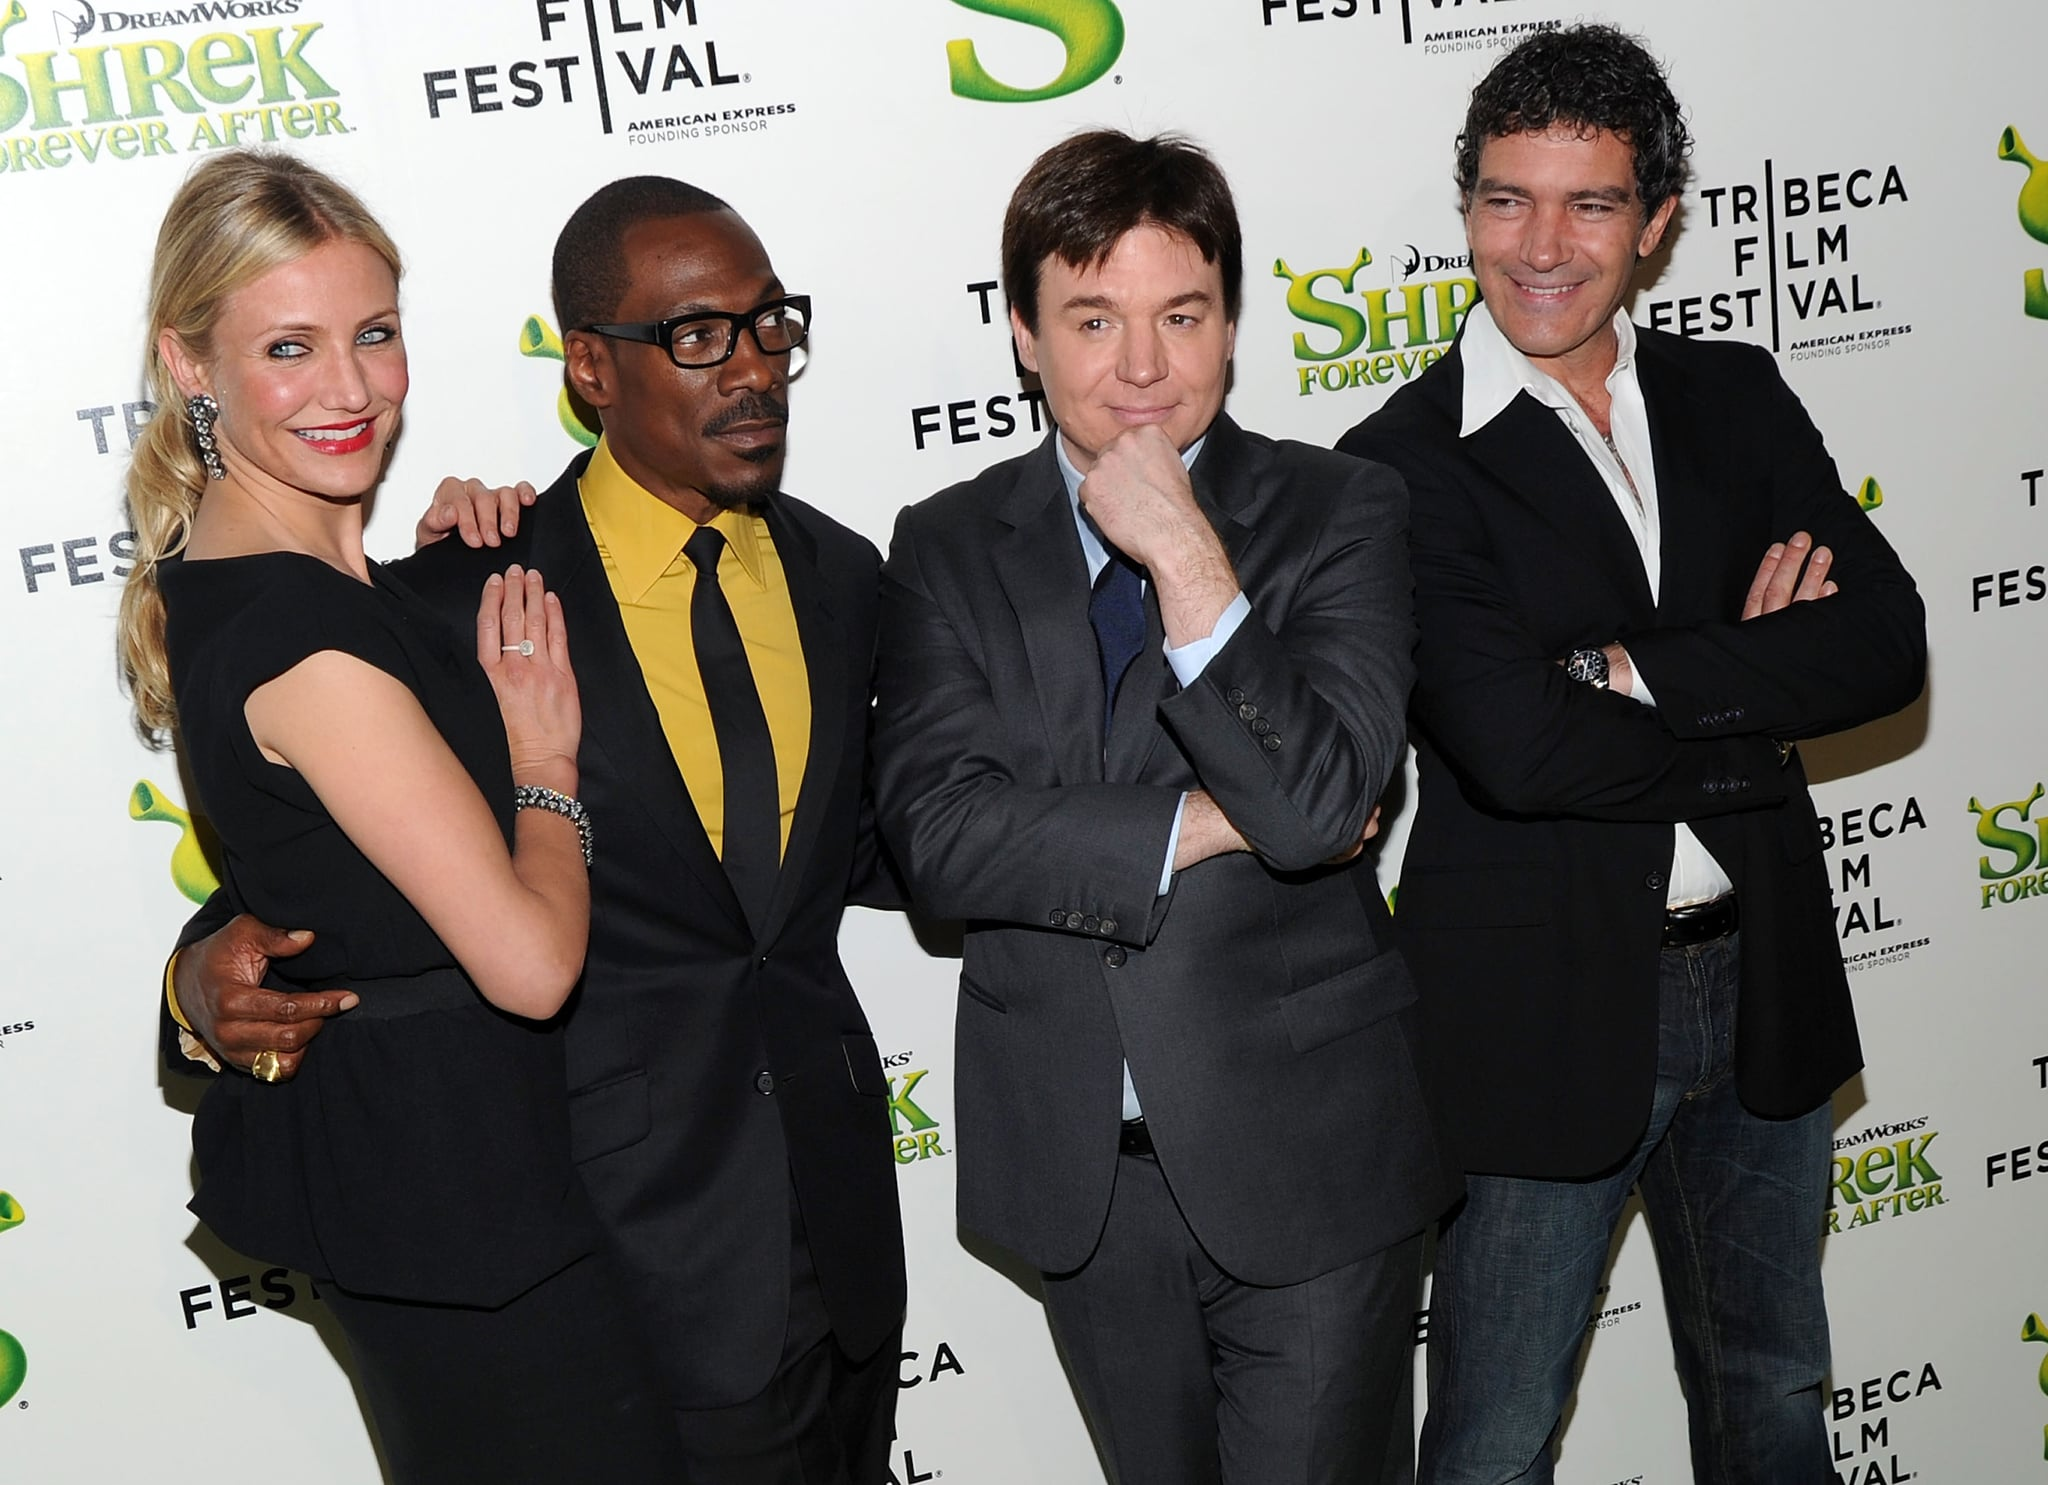 Pictures Of Cameron Diaz Mike Myers Eddie Murphy At The